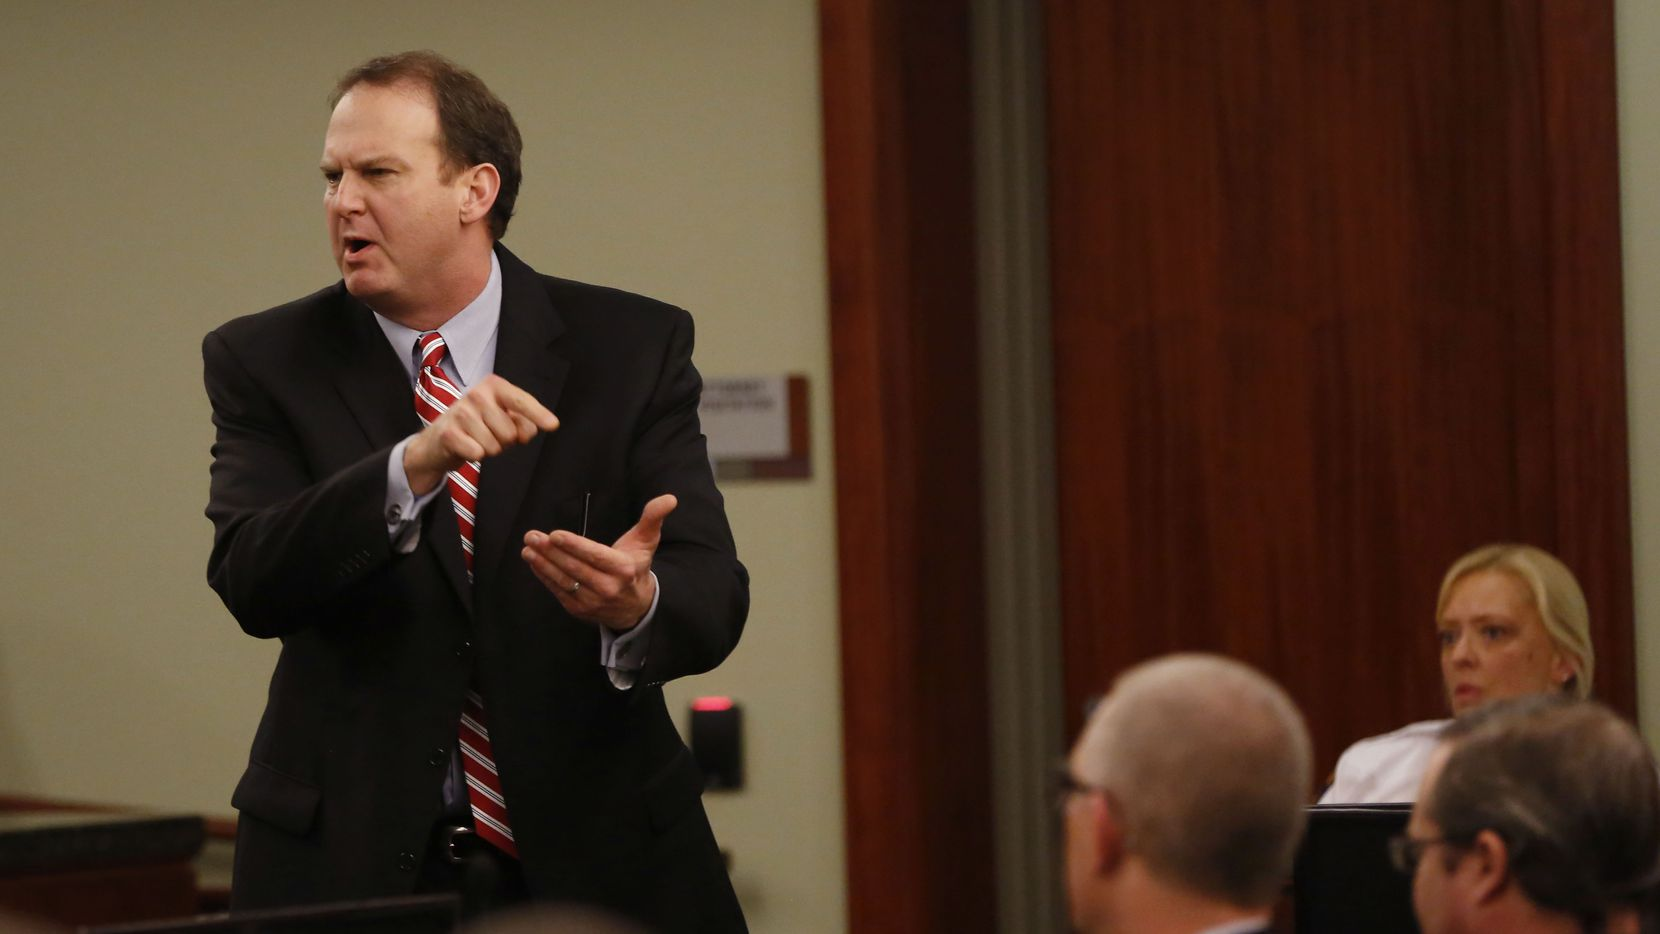 Special prosecutor Bill Wirskye points at Eric Williams as he gives closing arguments during the punishment phase of the Eric Williams capital murder trial at the Rockwall County Courthouse in Rockwall, on Tuesday, December 16, 2014. Williams is accused in the Kaufman DA murder of Mike McLelland and his wife Cynthia McLelland in 2013. (Vernon Bryant/The Dallas Morning News)